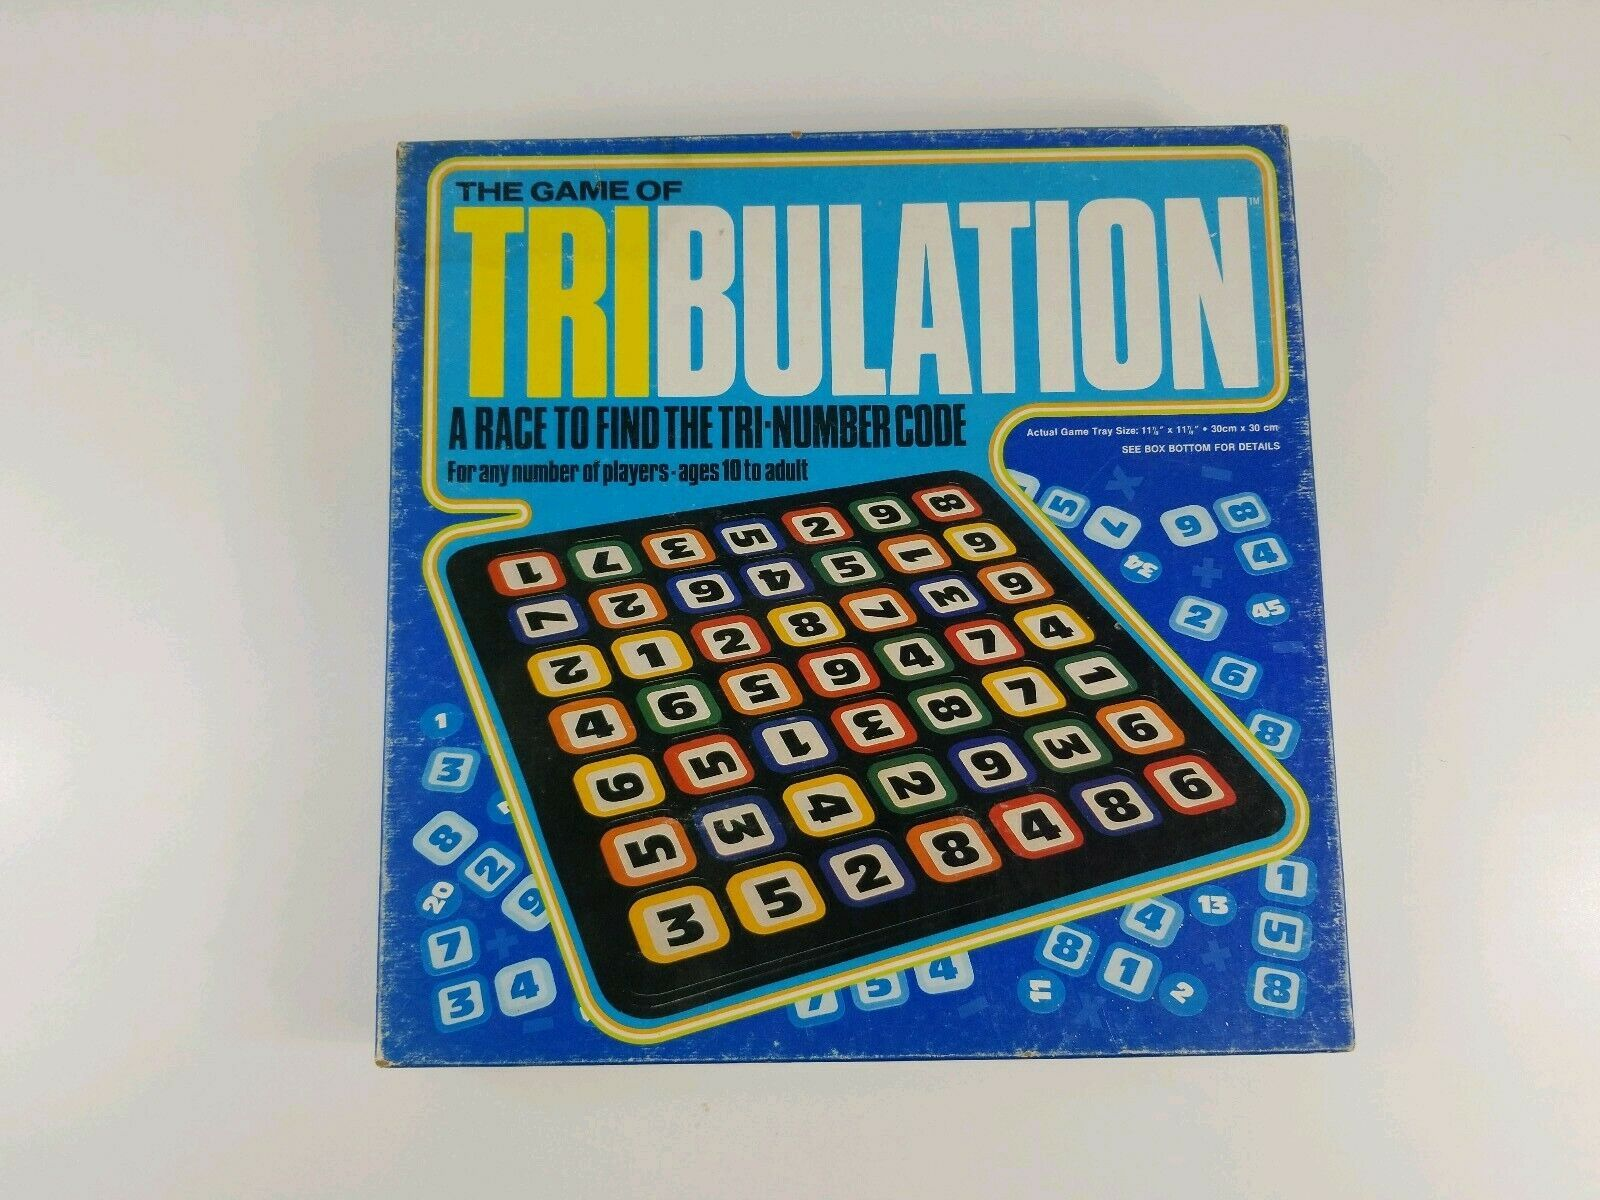 Primary image for Vintage The Game of TRIBULATION Board Game (Whitman, 1981) New Opened Unplayed